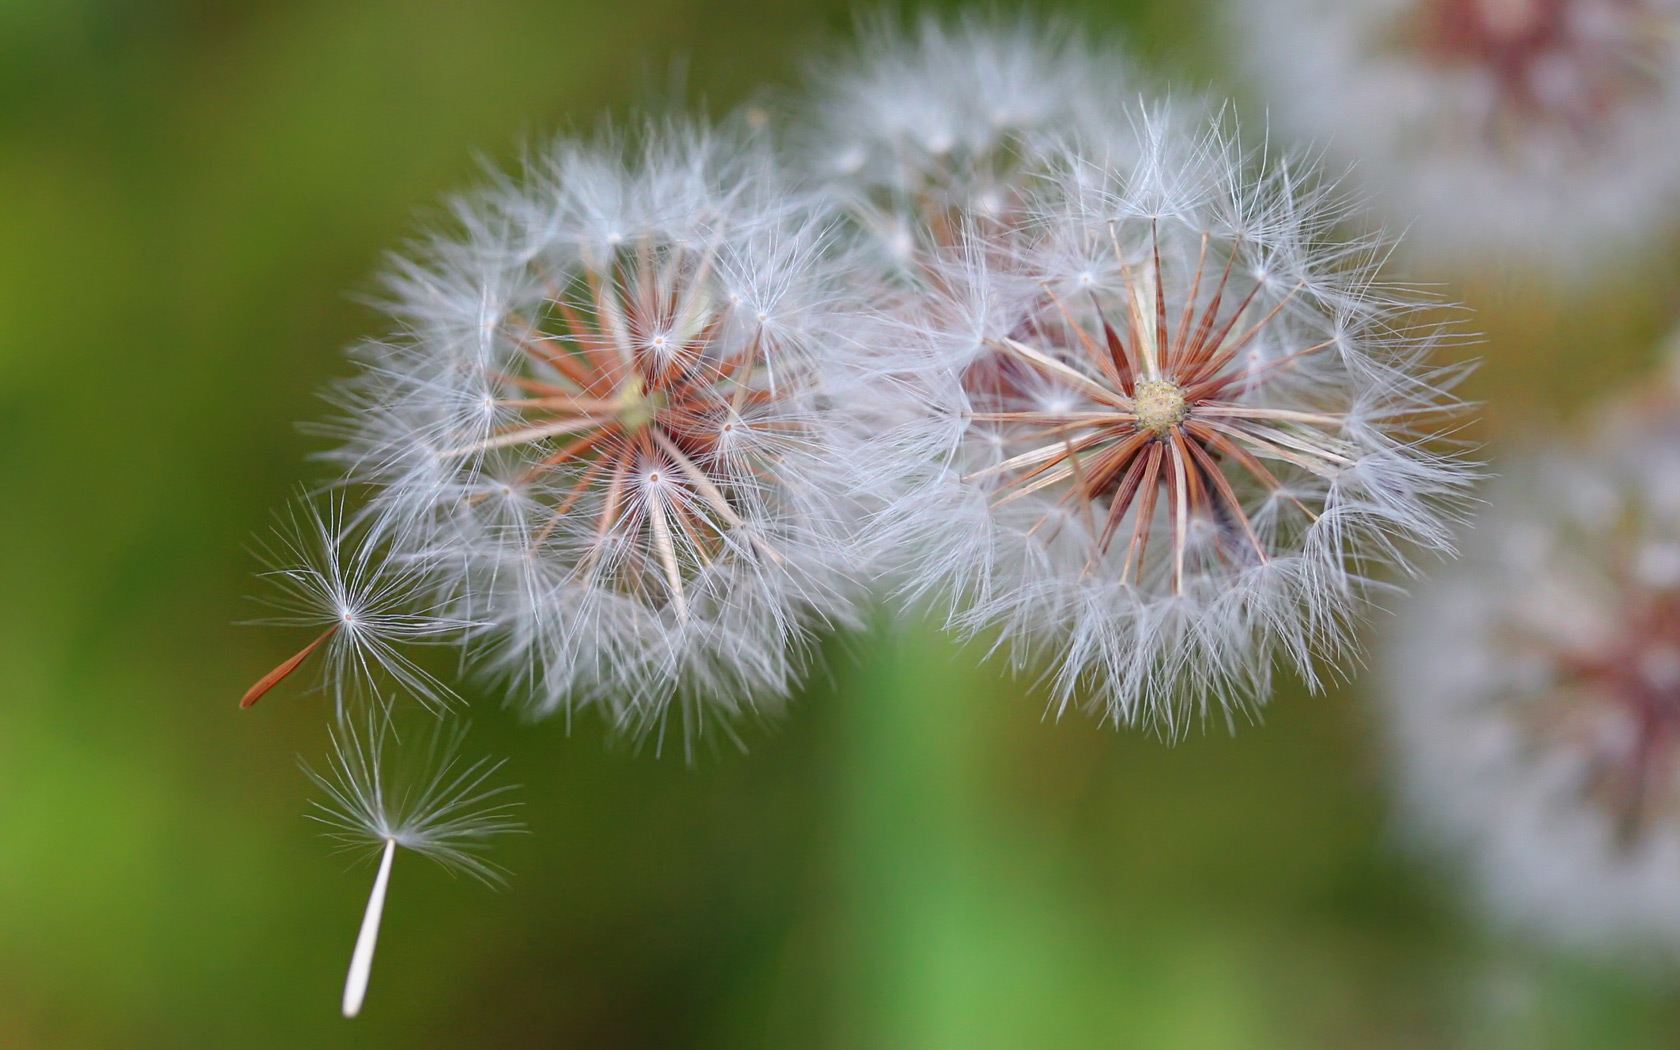 Dandelion Seeds Blowing in Wind - Wild Flower Background - 1680x1050 ...